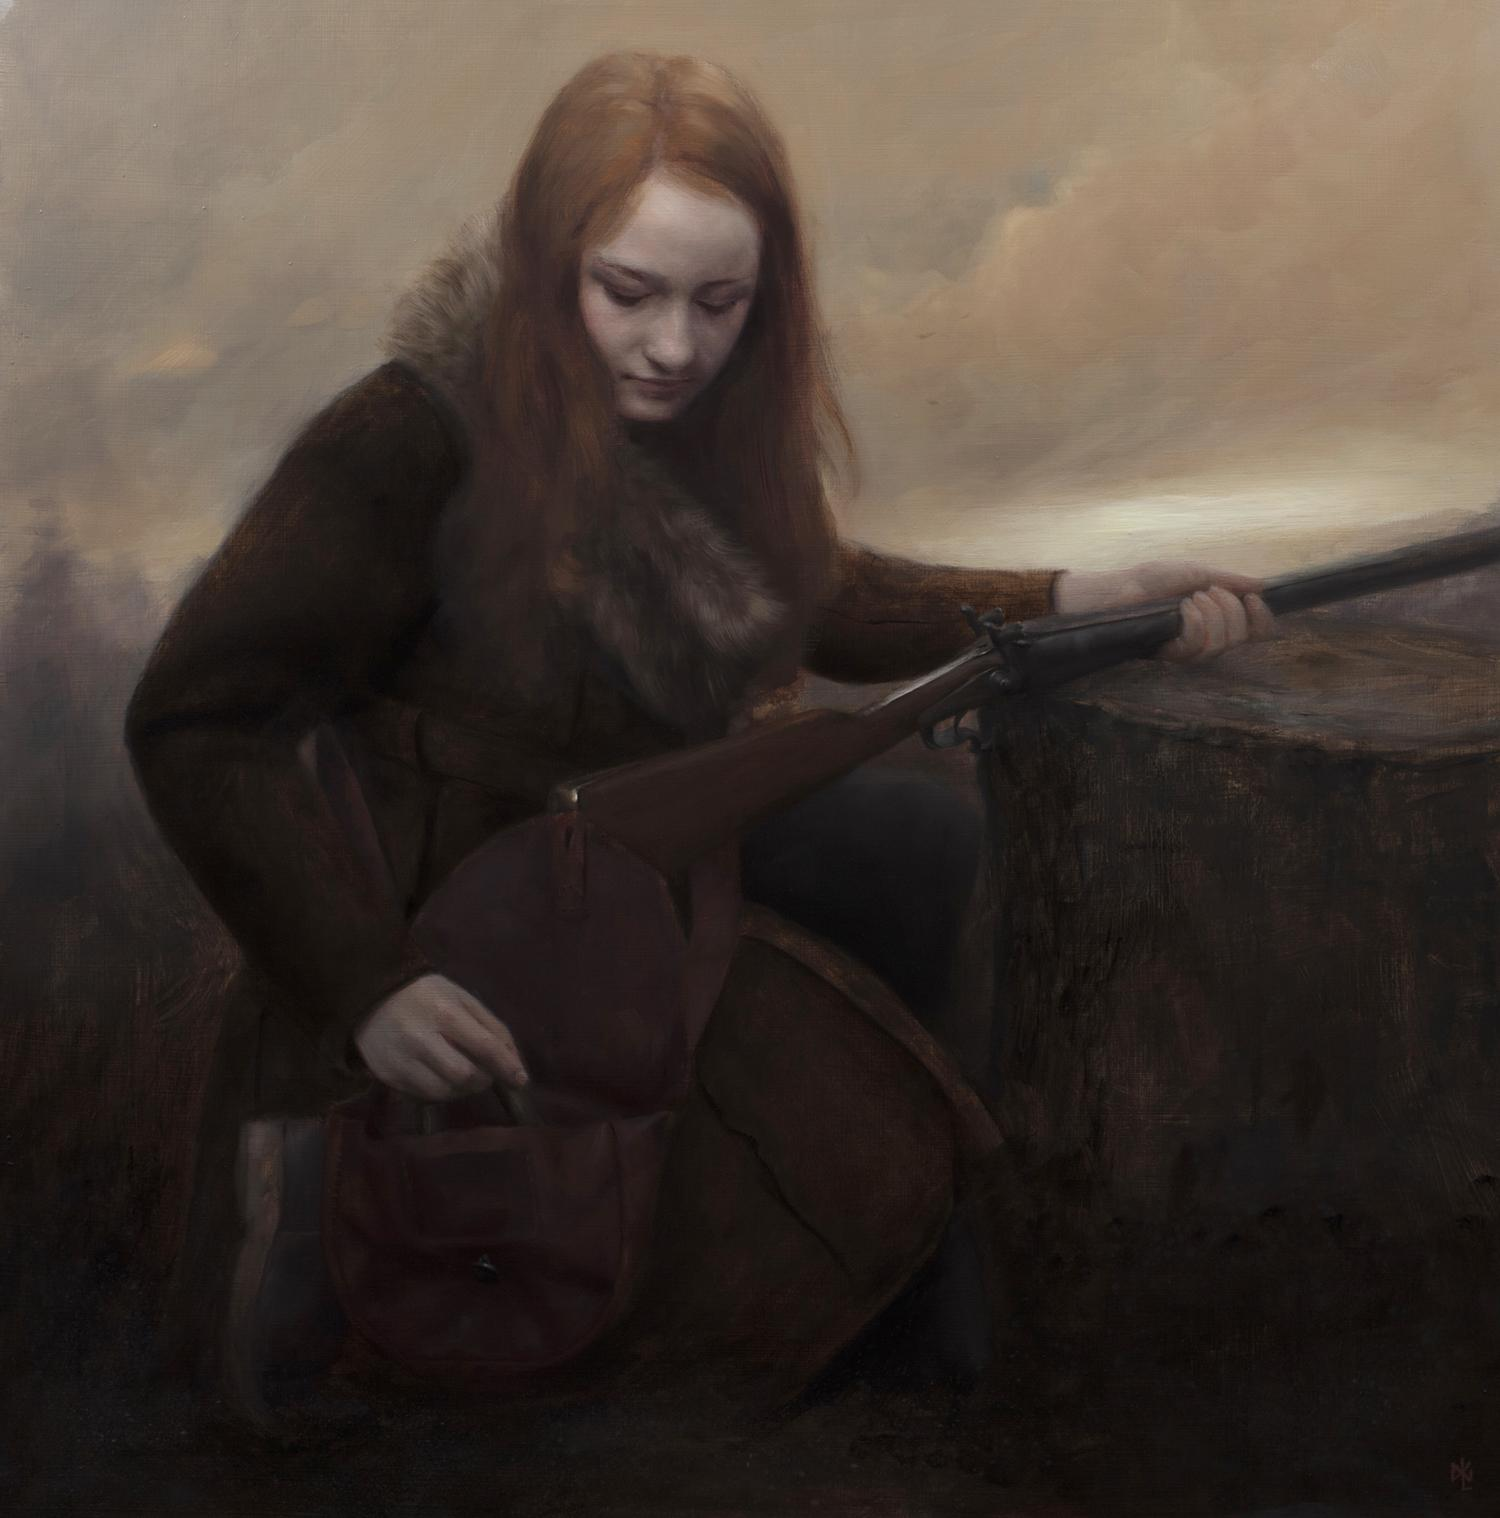 Dusk, painting by david gluck, girl with rifle